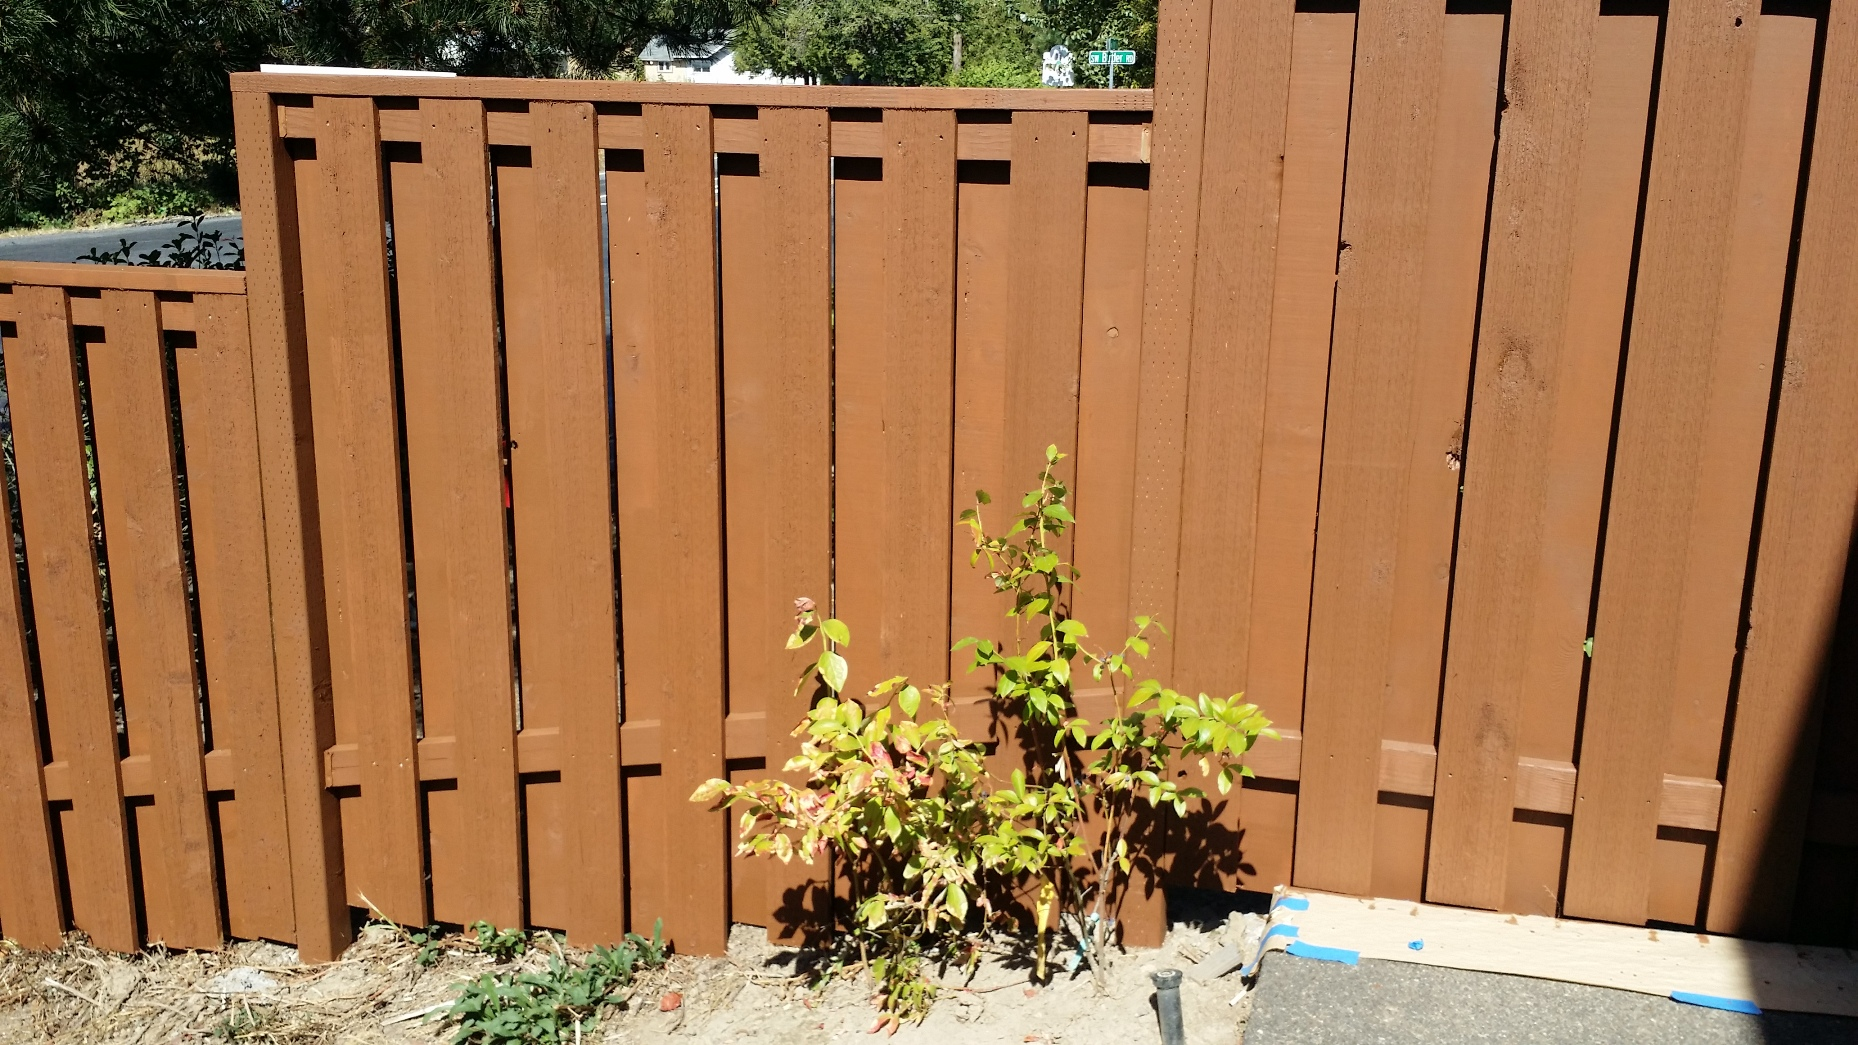 San Antonio fence repair quote, San Antonio fence contractor, San Antonio fencing company, Fence Repair San Antonio, San Antonio fencing repair